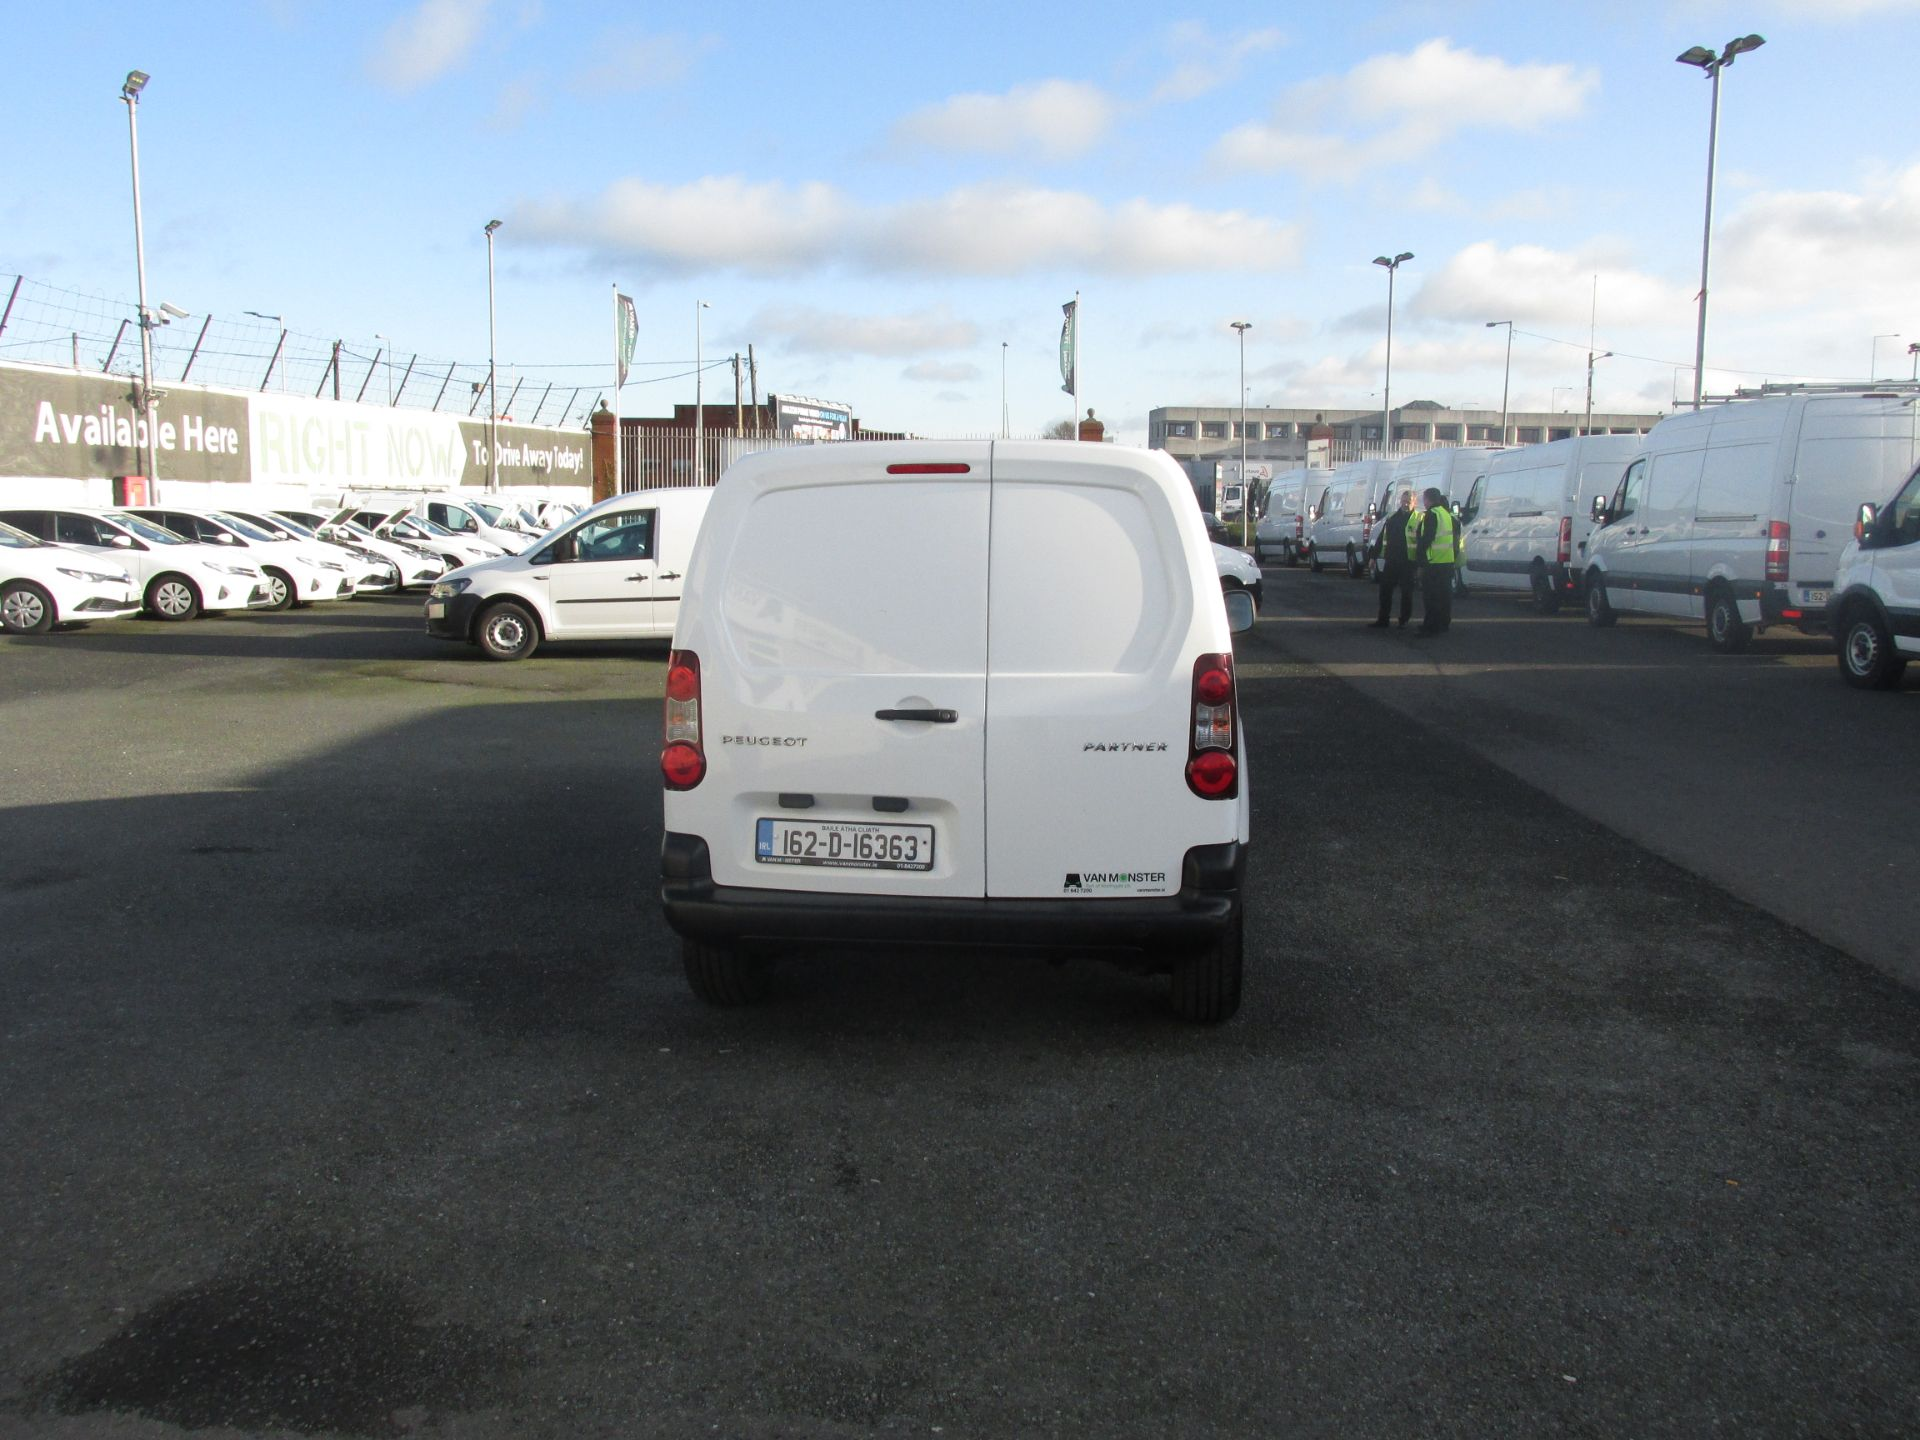 2016 Peugeot Partner #150 VANS TO VIEW IN SANTRY # (162D16363) Image 6